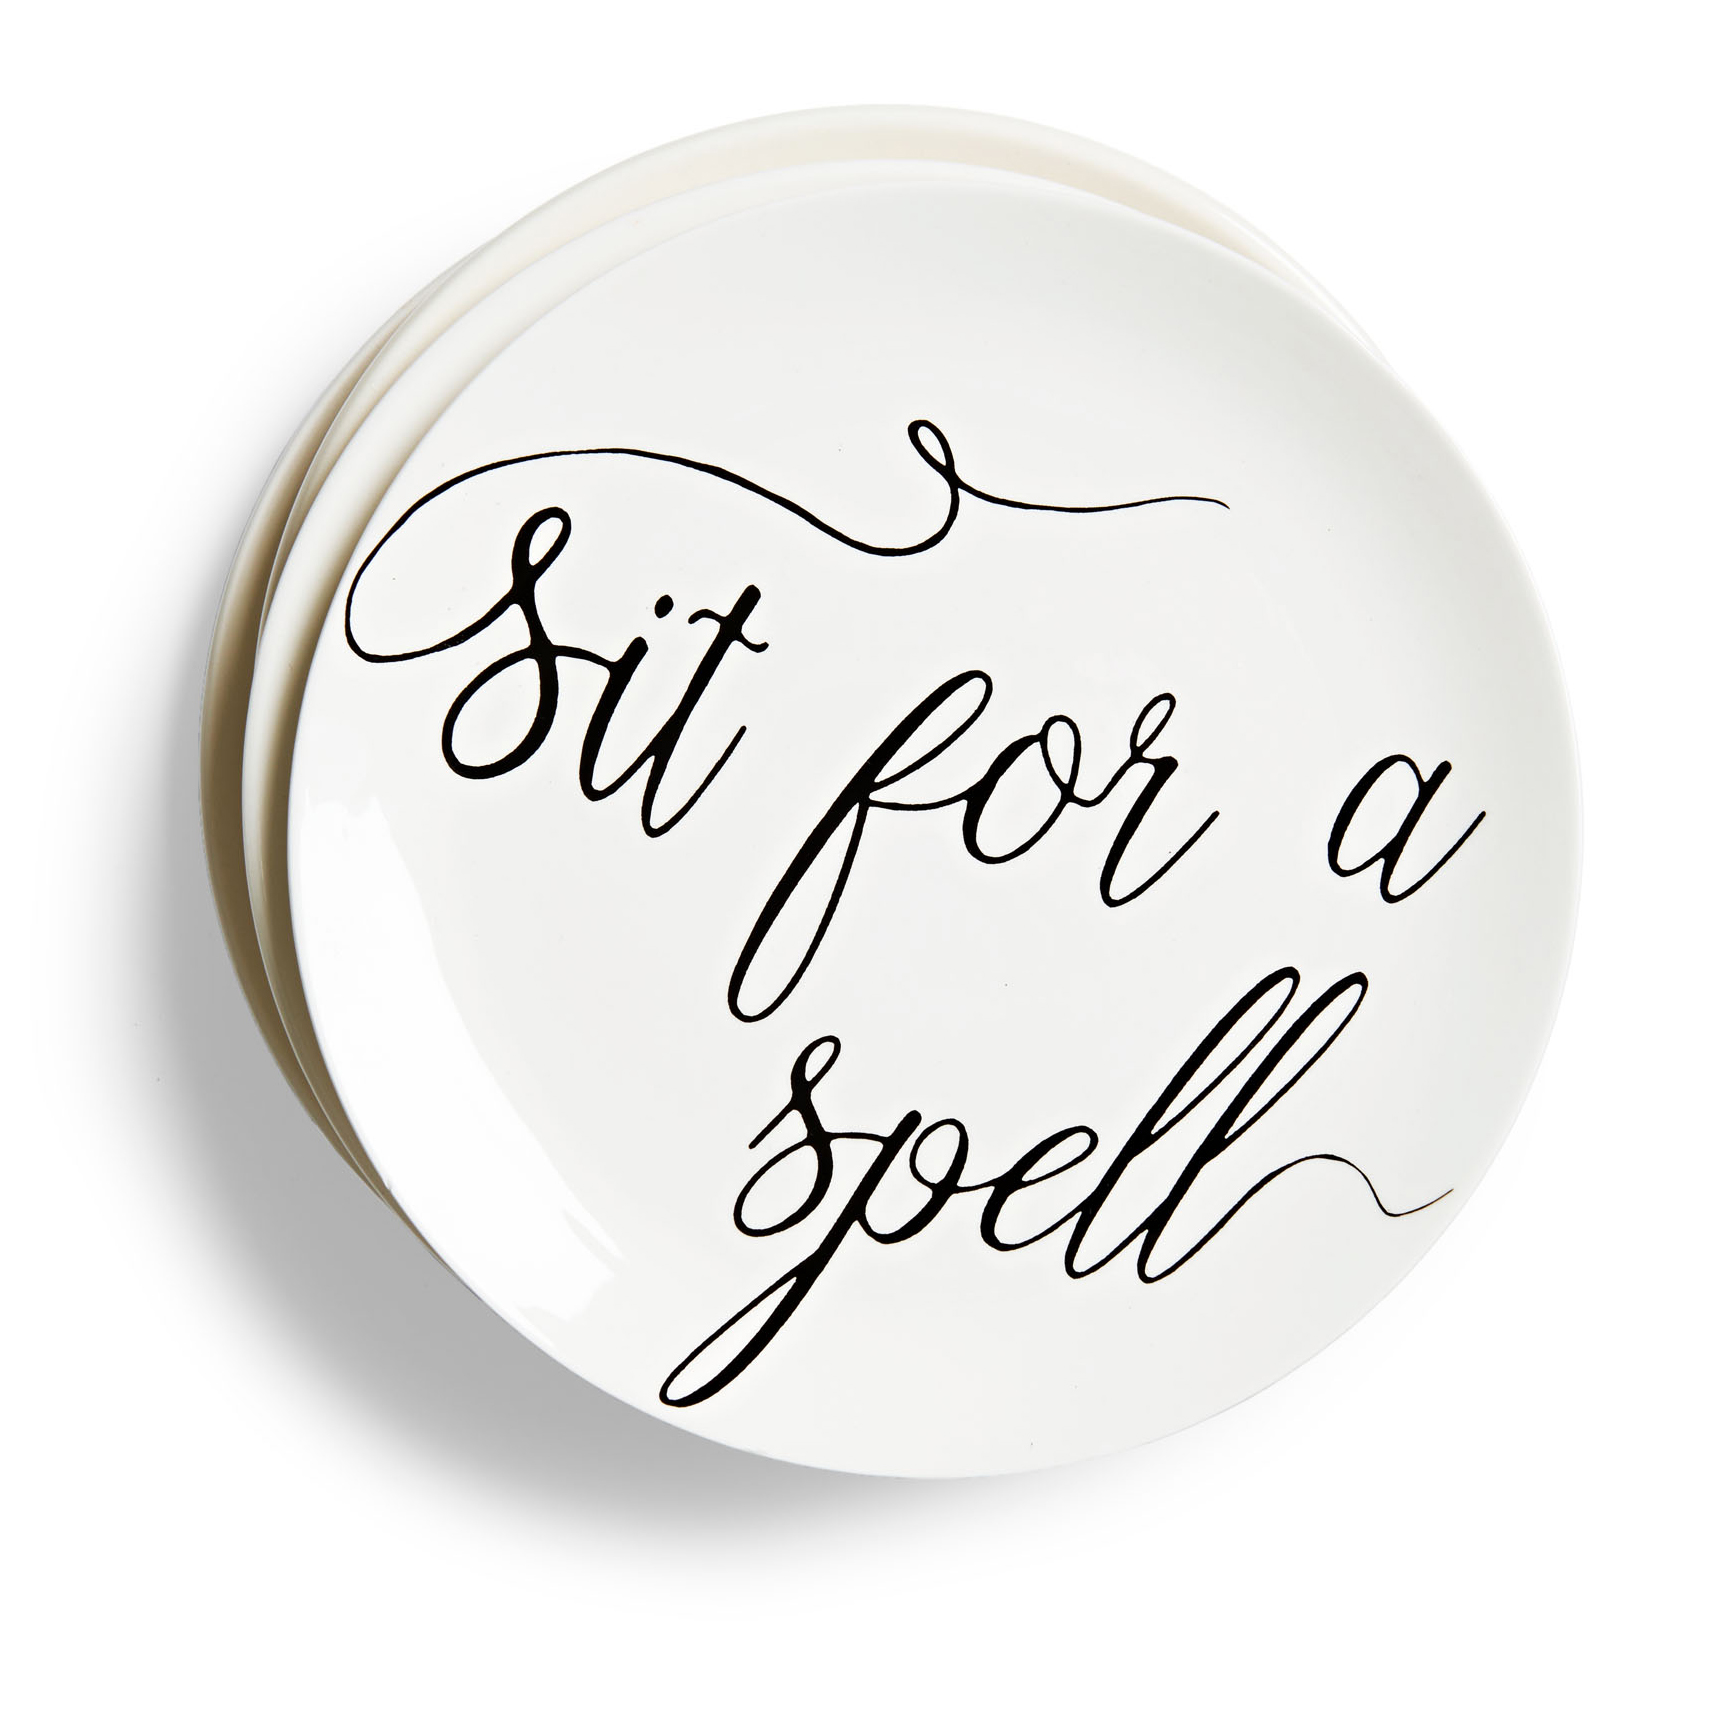 witchy word plates